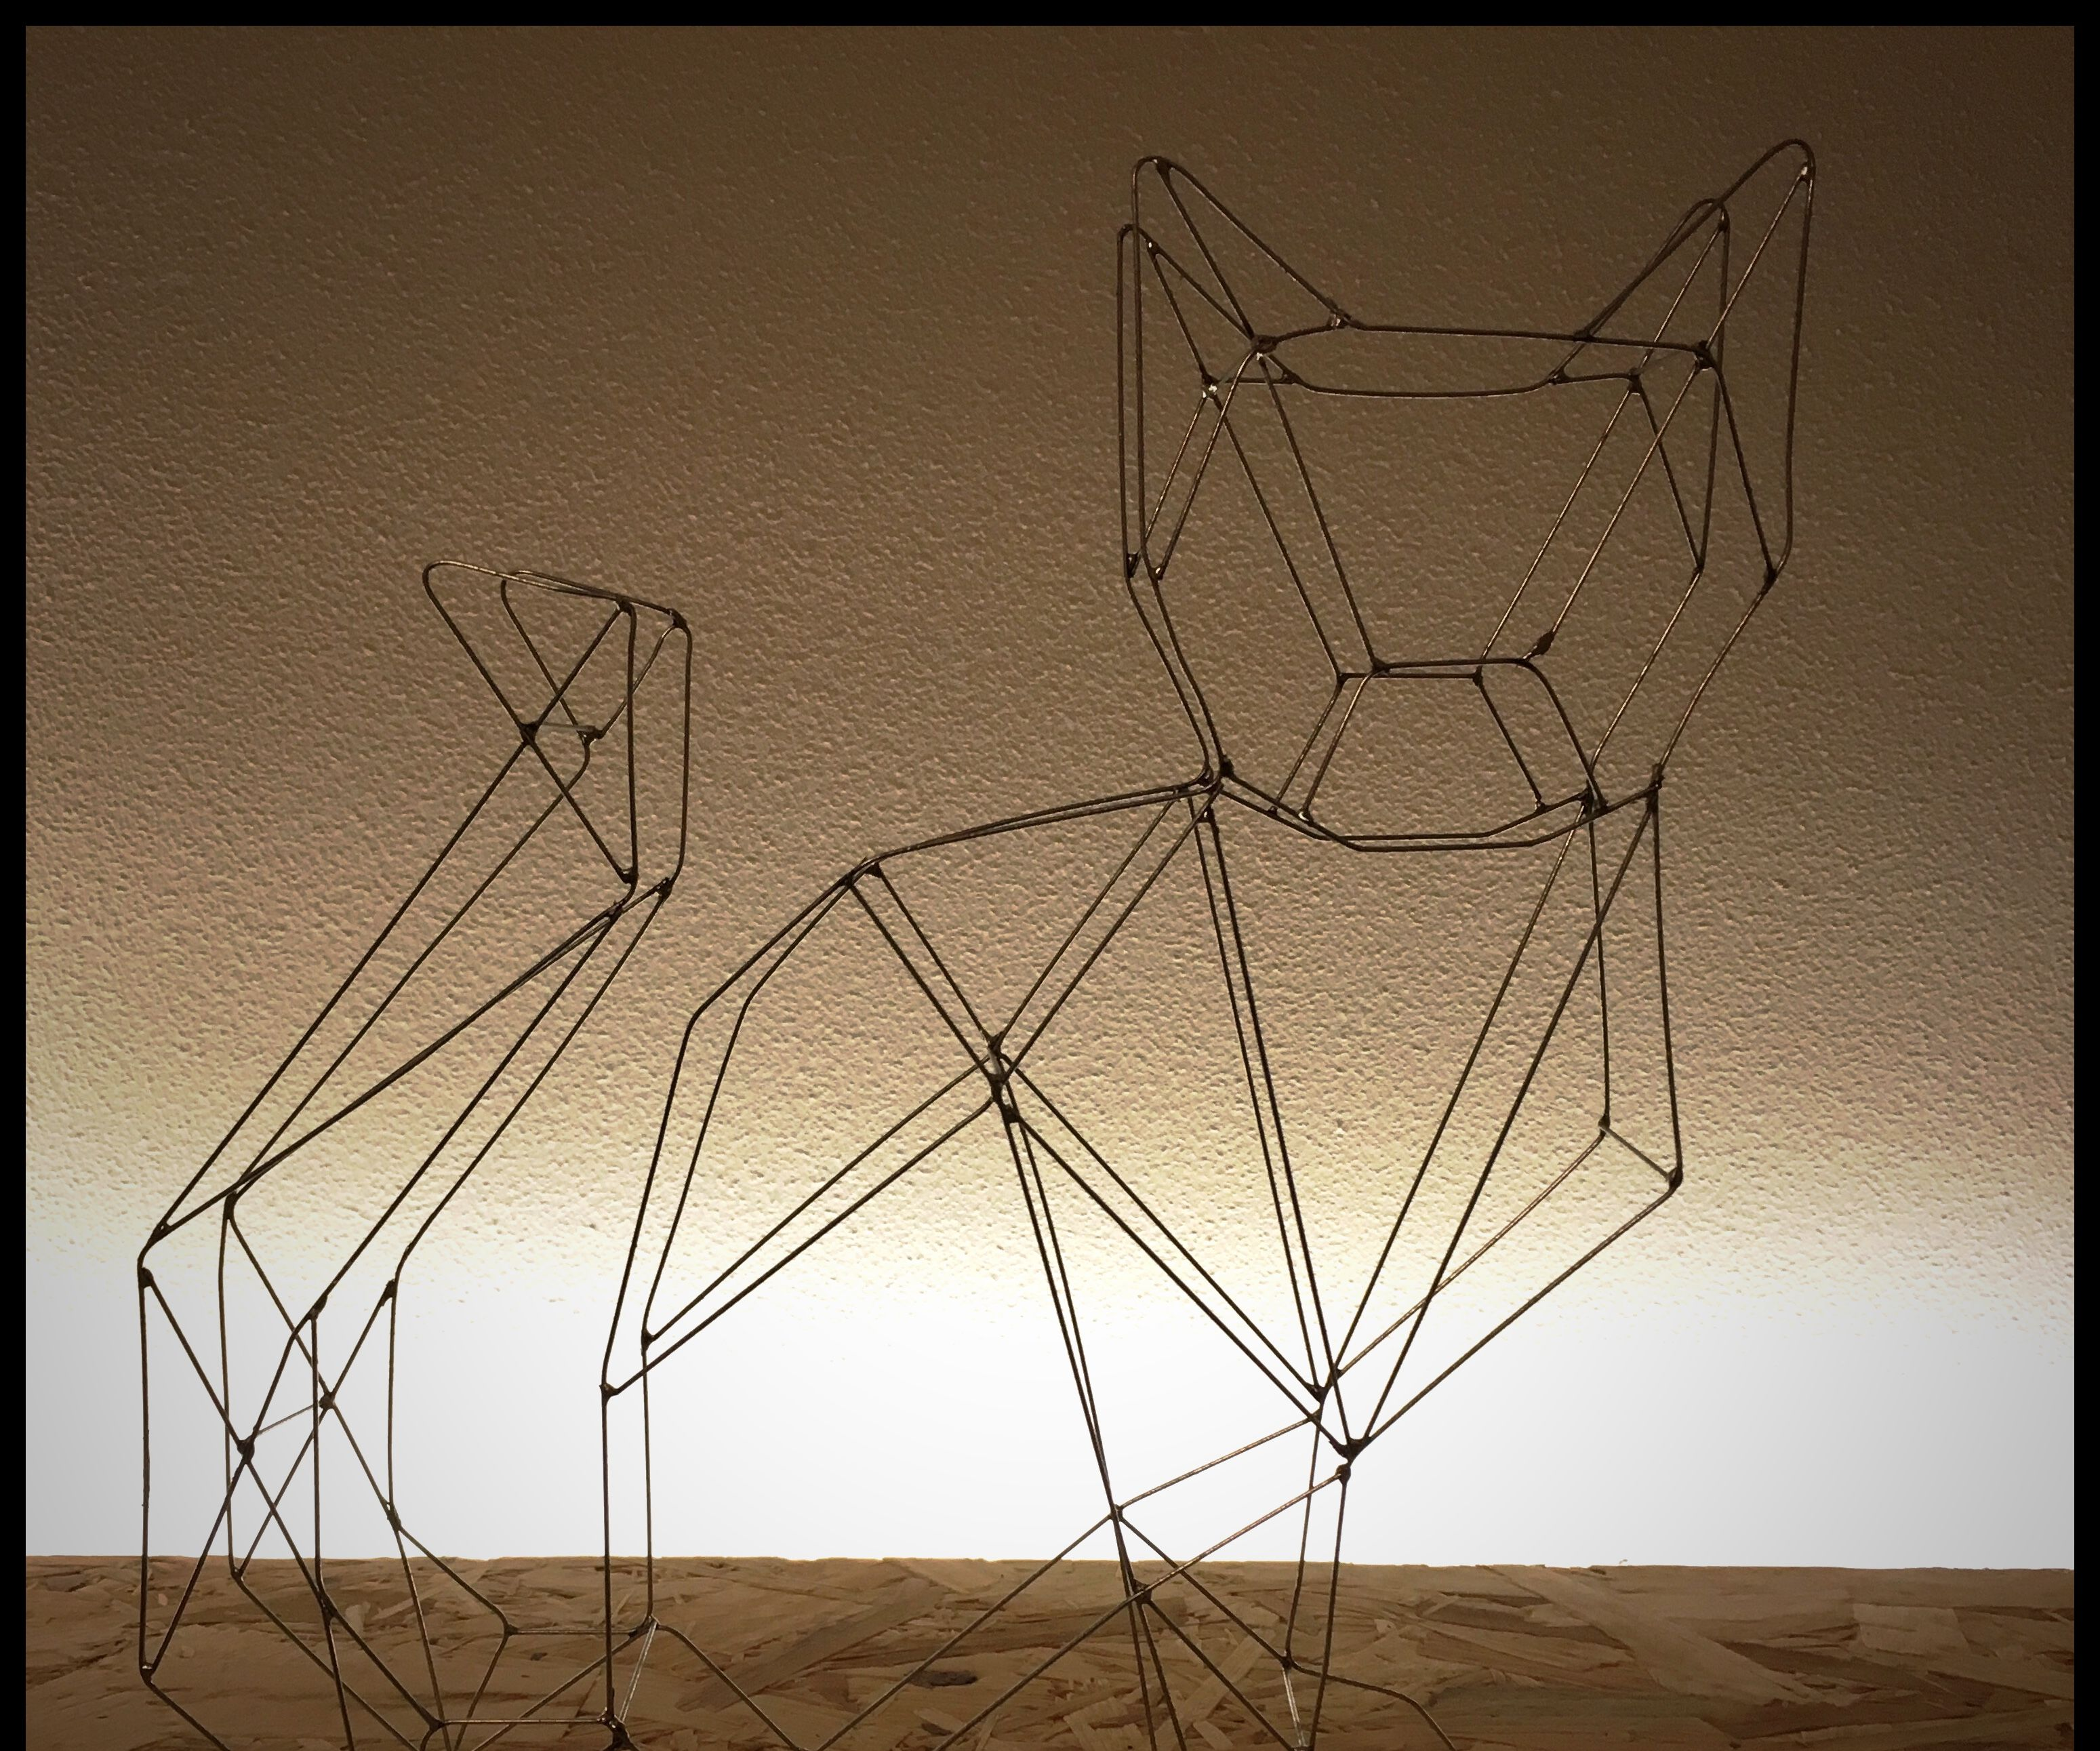 Wire art cat or solder a wire frame cat